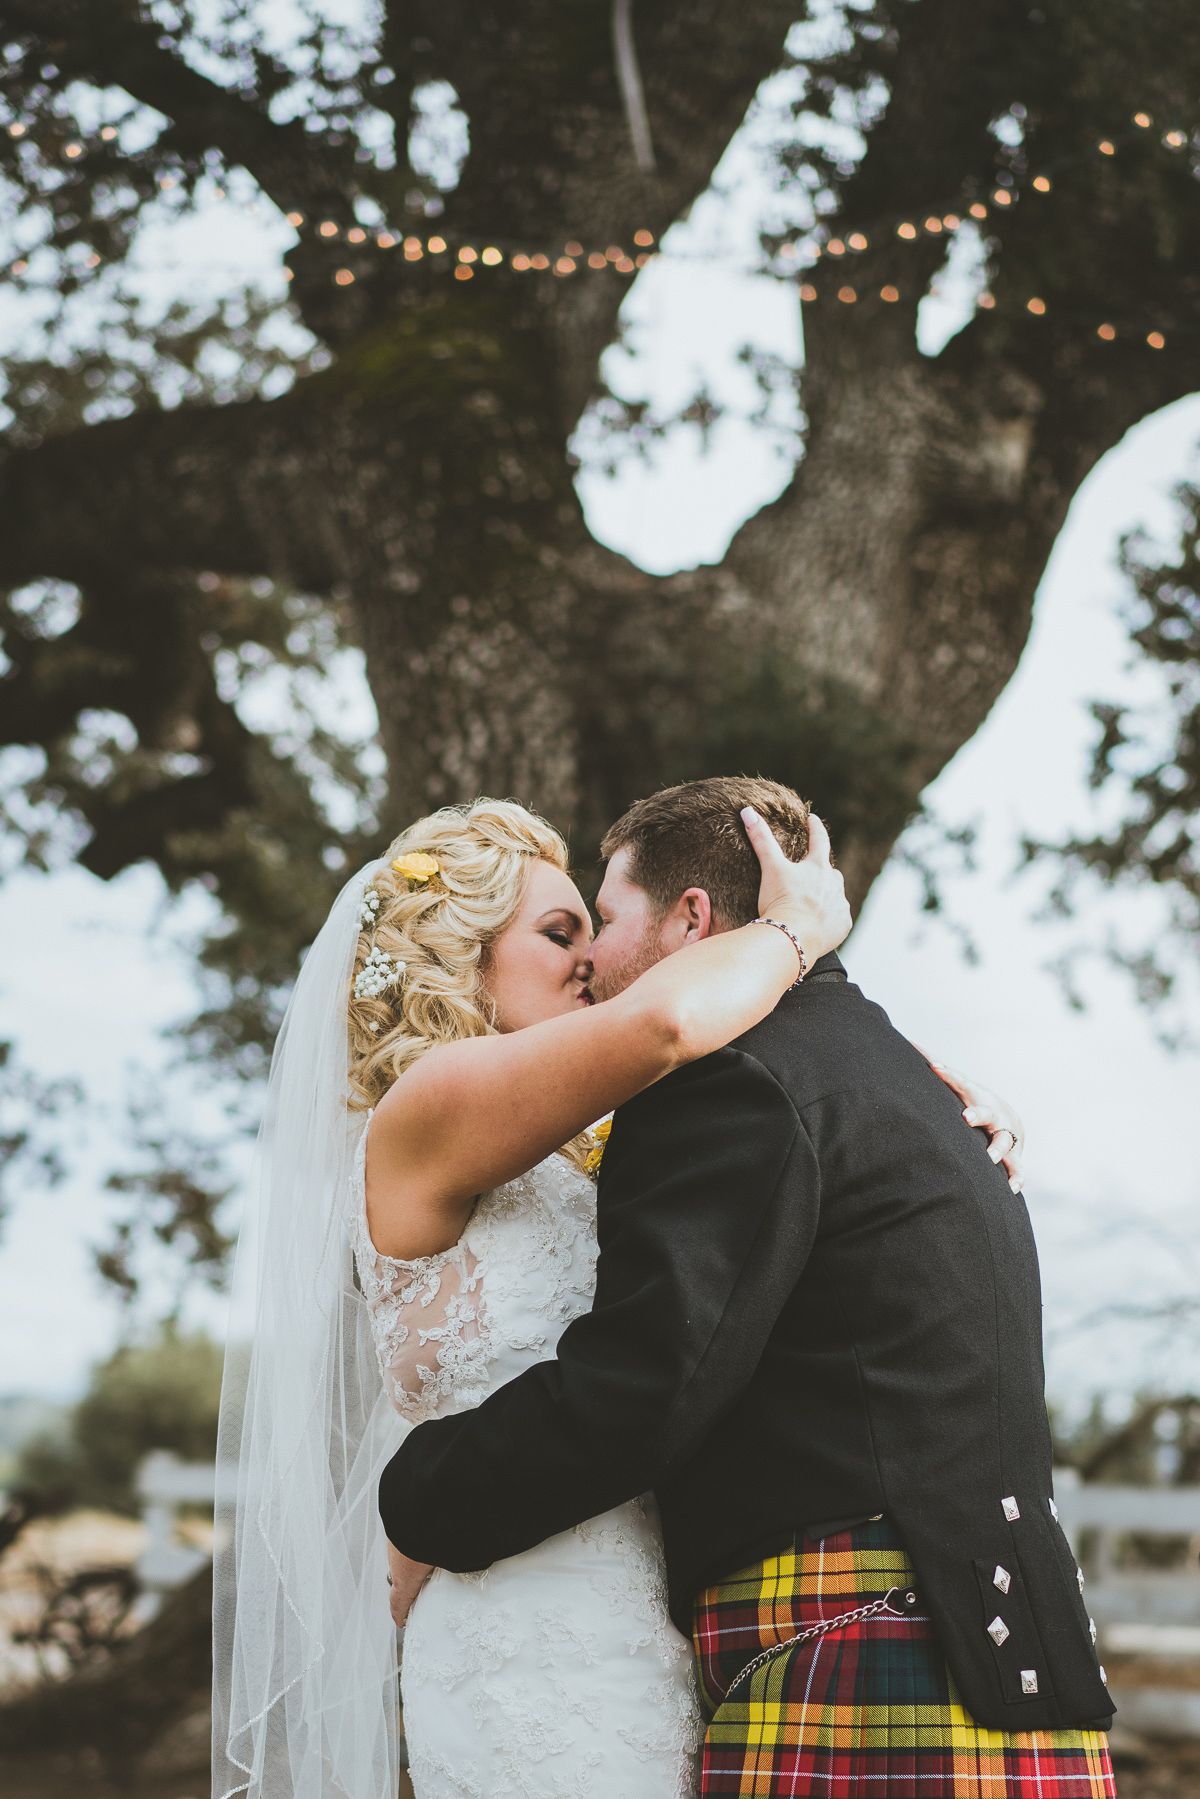 First husband and wife kiss